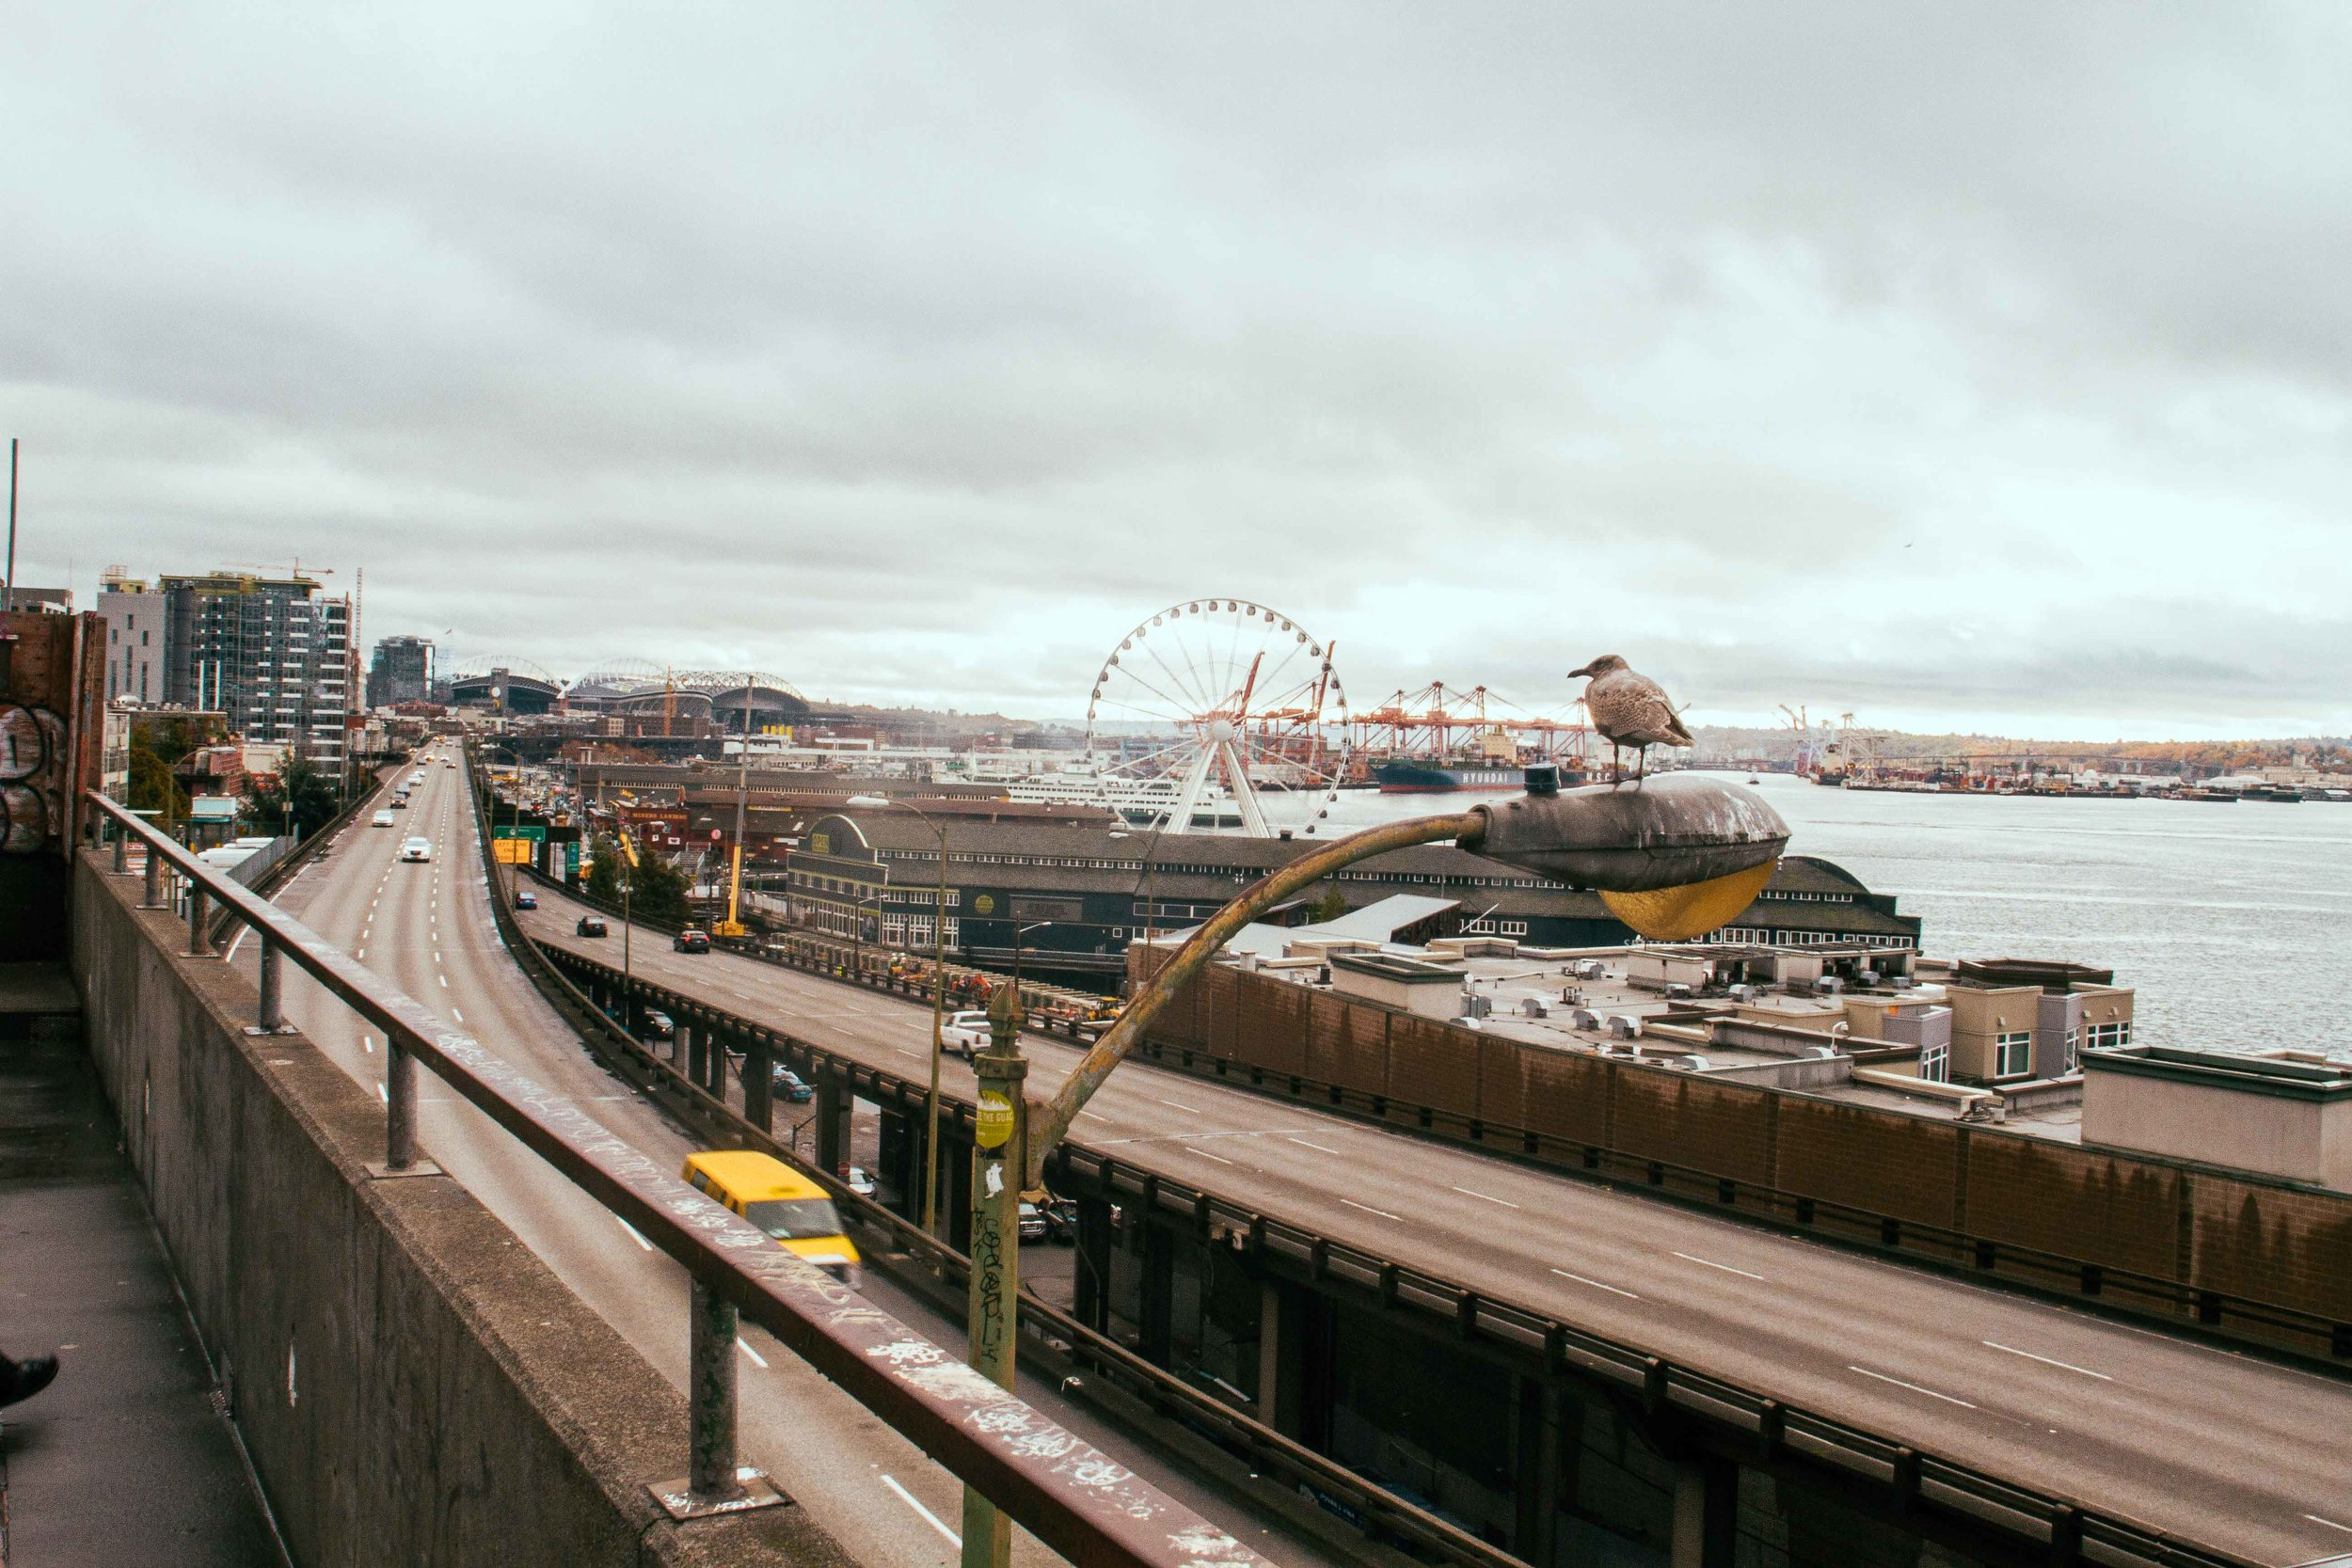 Outside of Pike Market